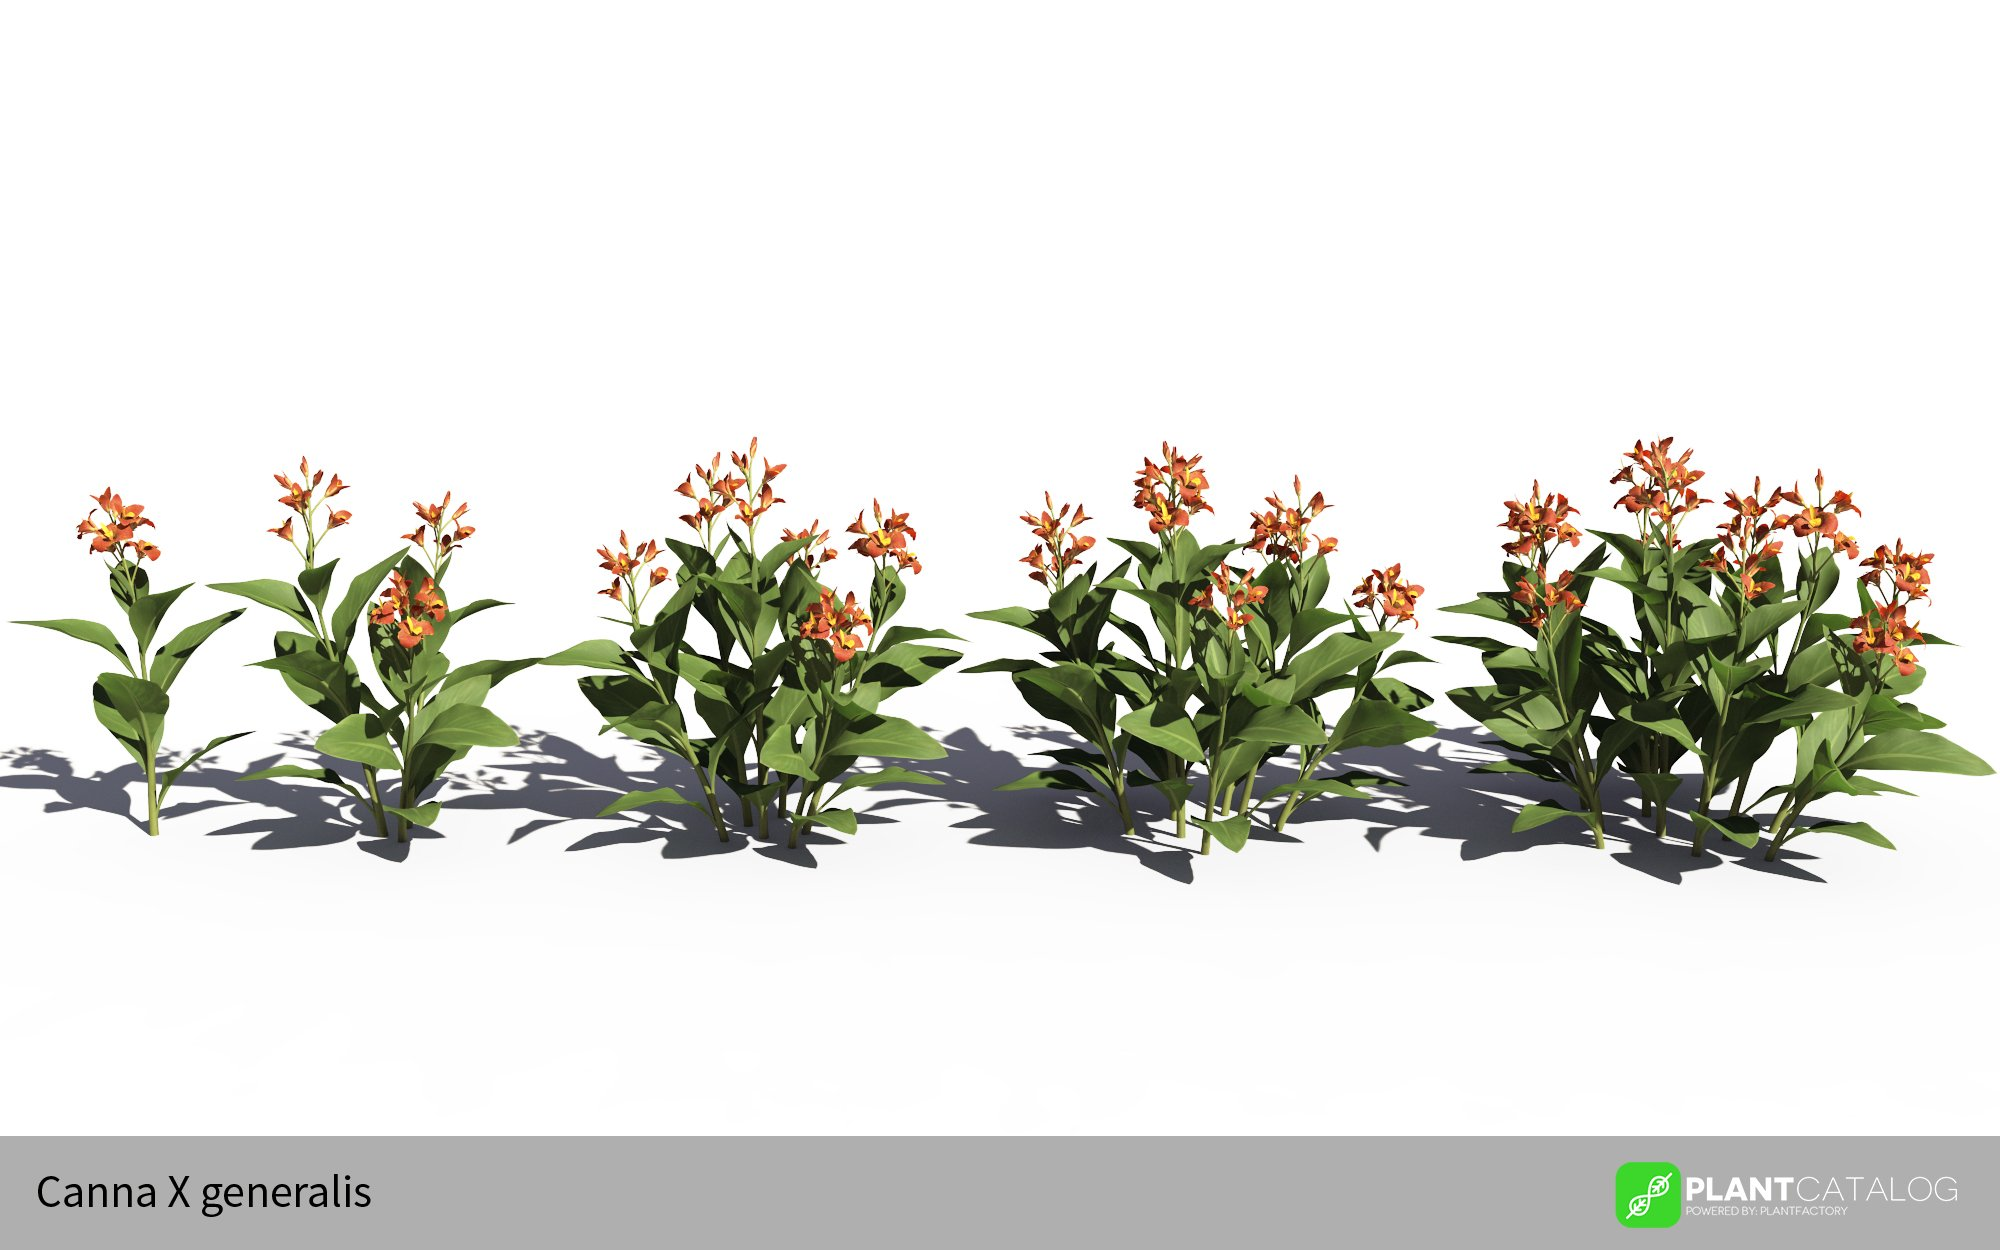 3D model of the Canna lily - Canna X generalis orange - from the PlantCatalog, rendered in VUE